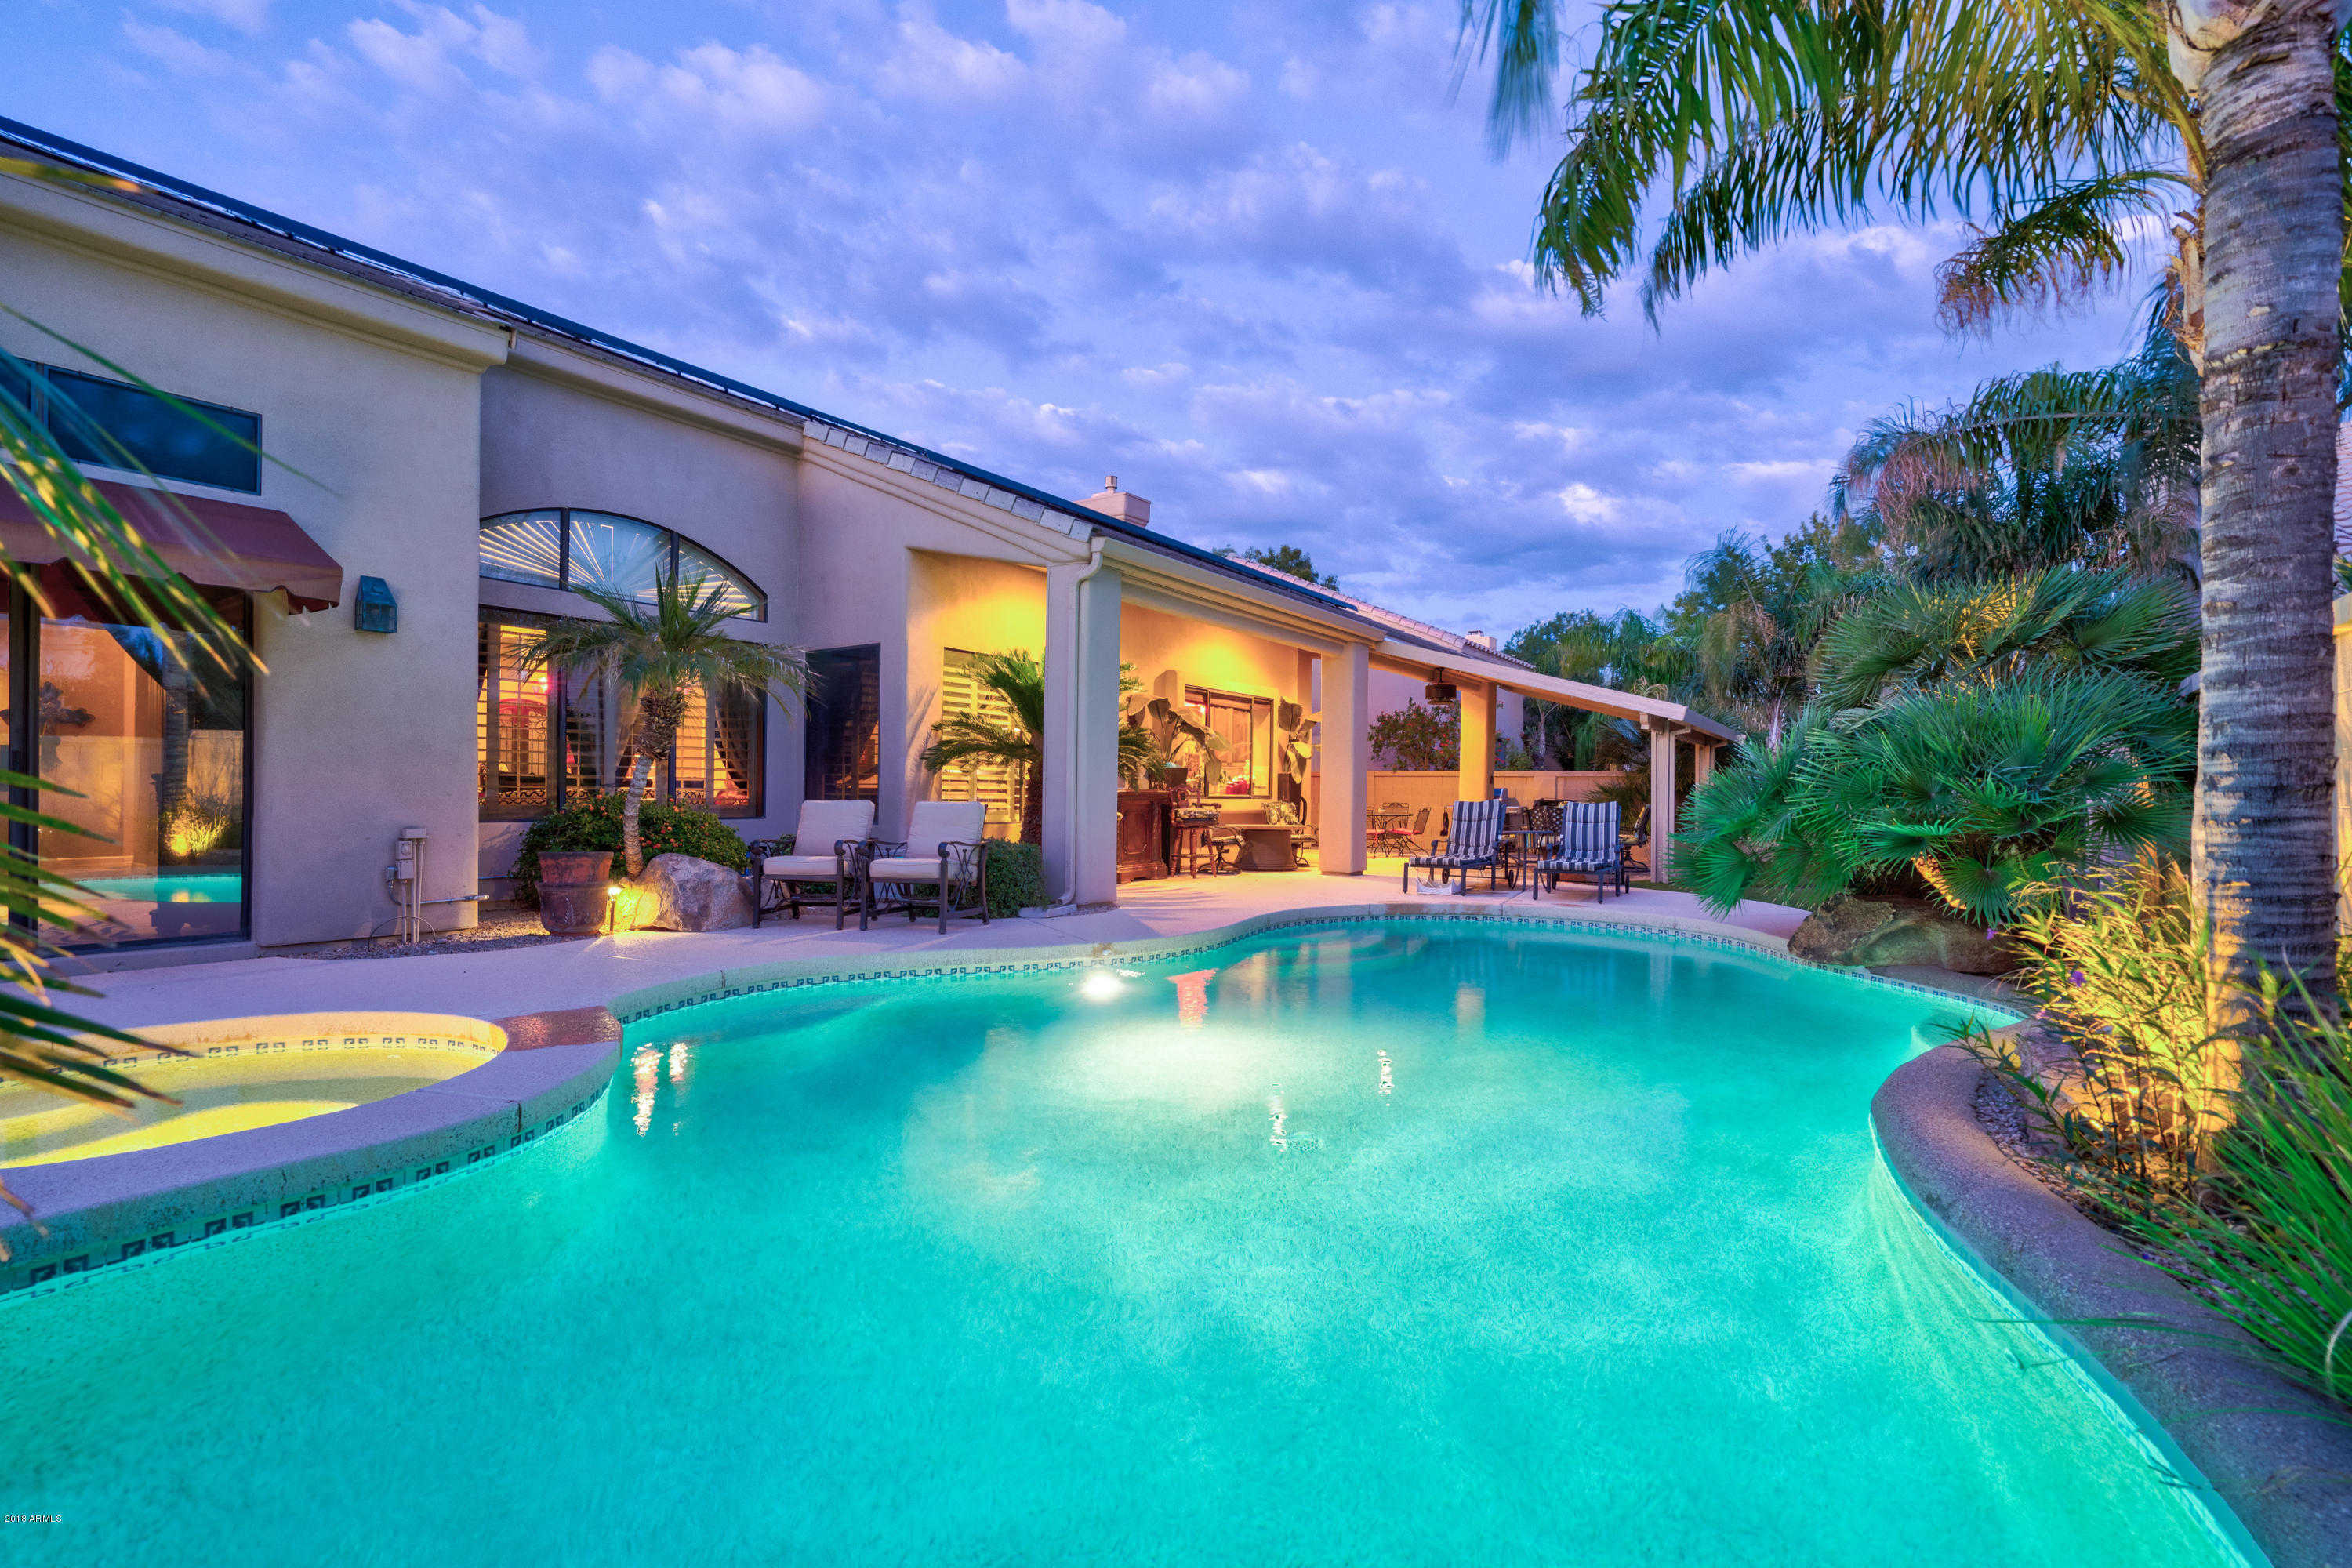 $729,000 - 4Br/3Ba - Home for Sale in Stonegate, Windemere, Scottsdale